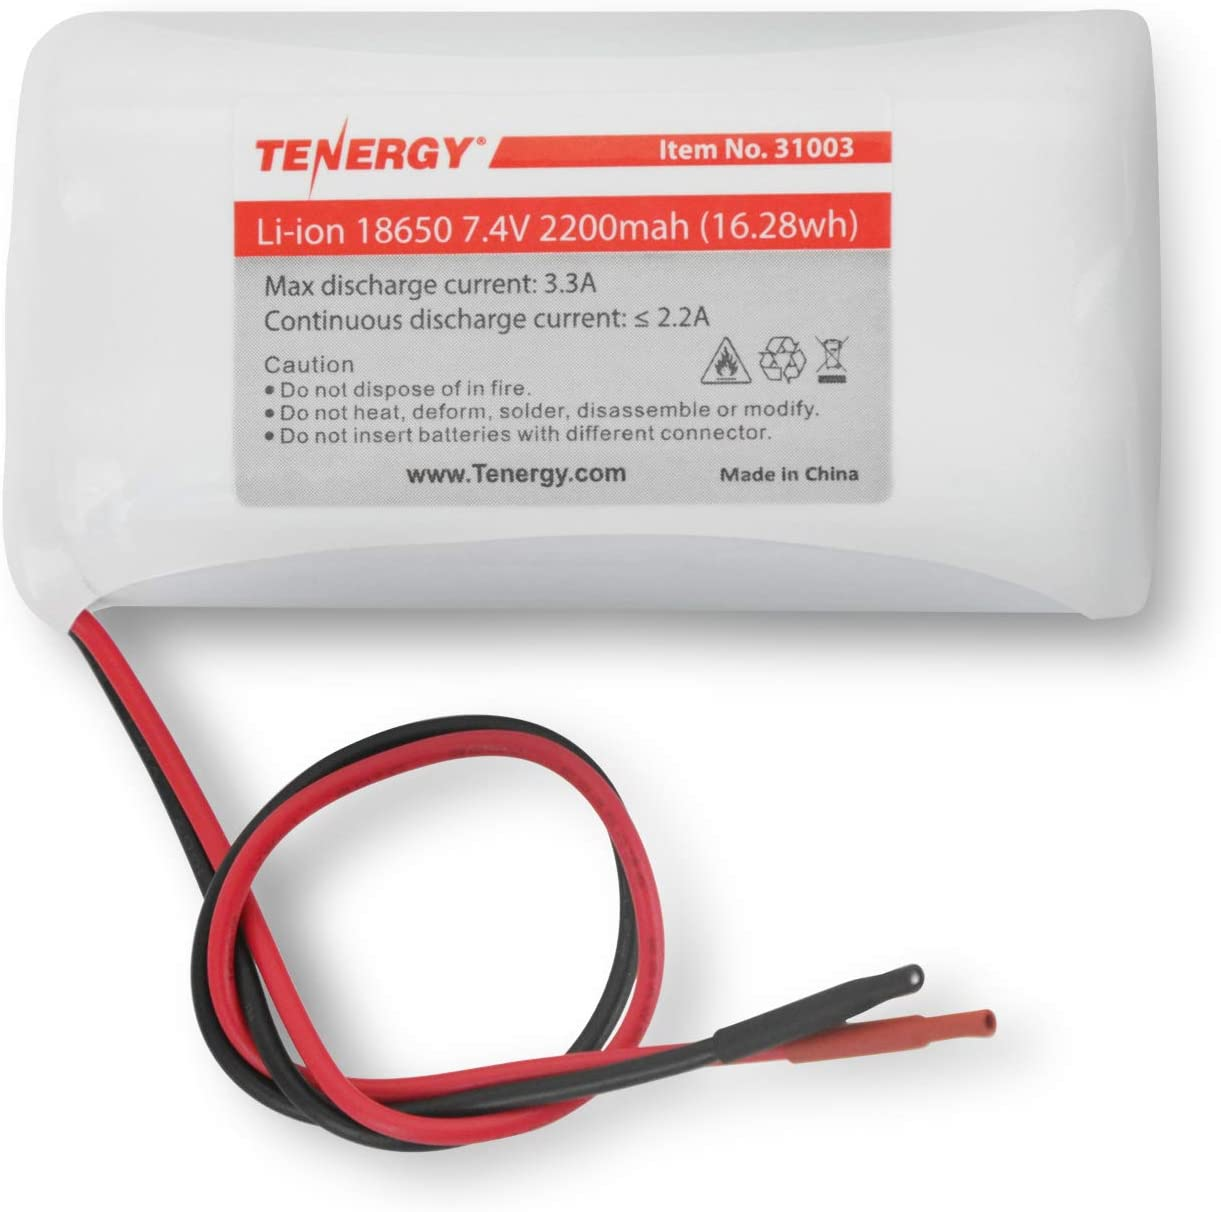 Tenergy 7.4V Li-ion 2200mAh Rechargeable Battery Module with PCB